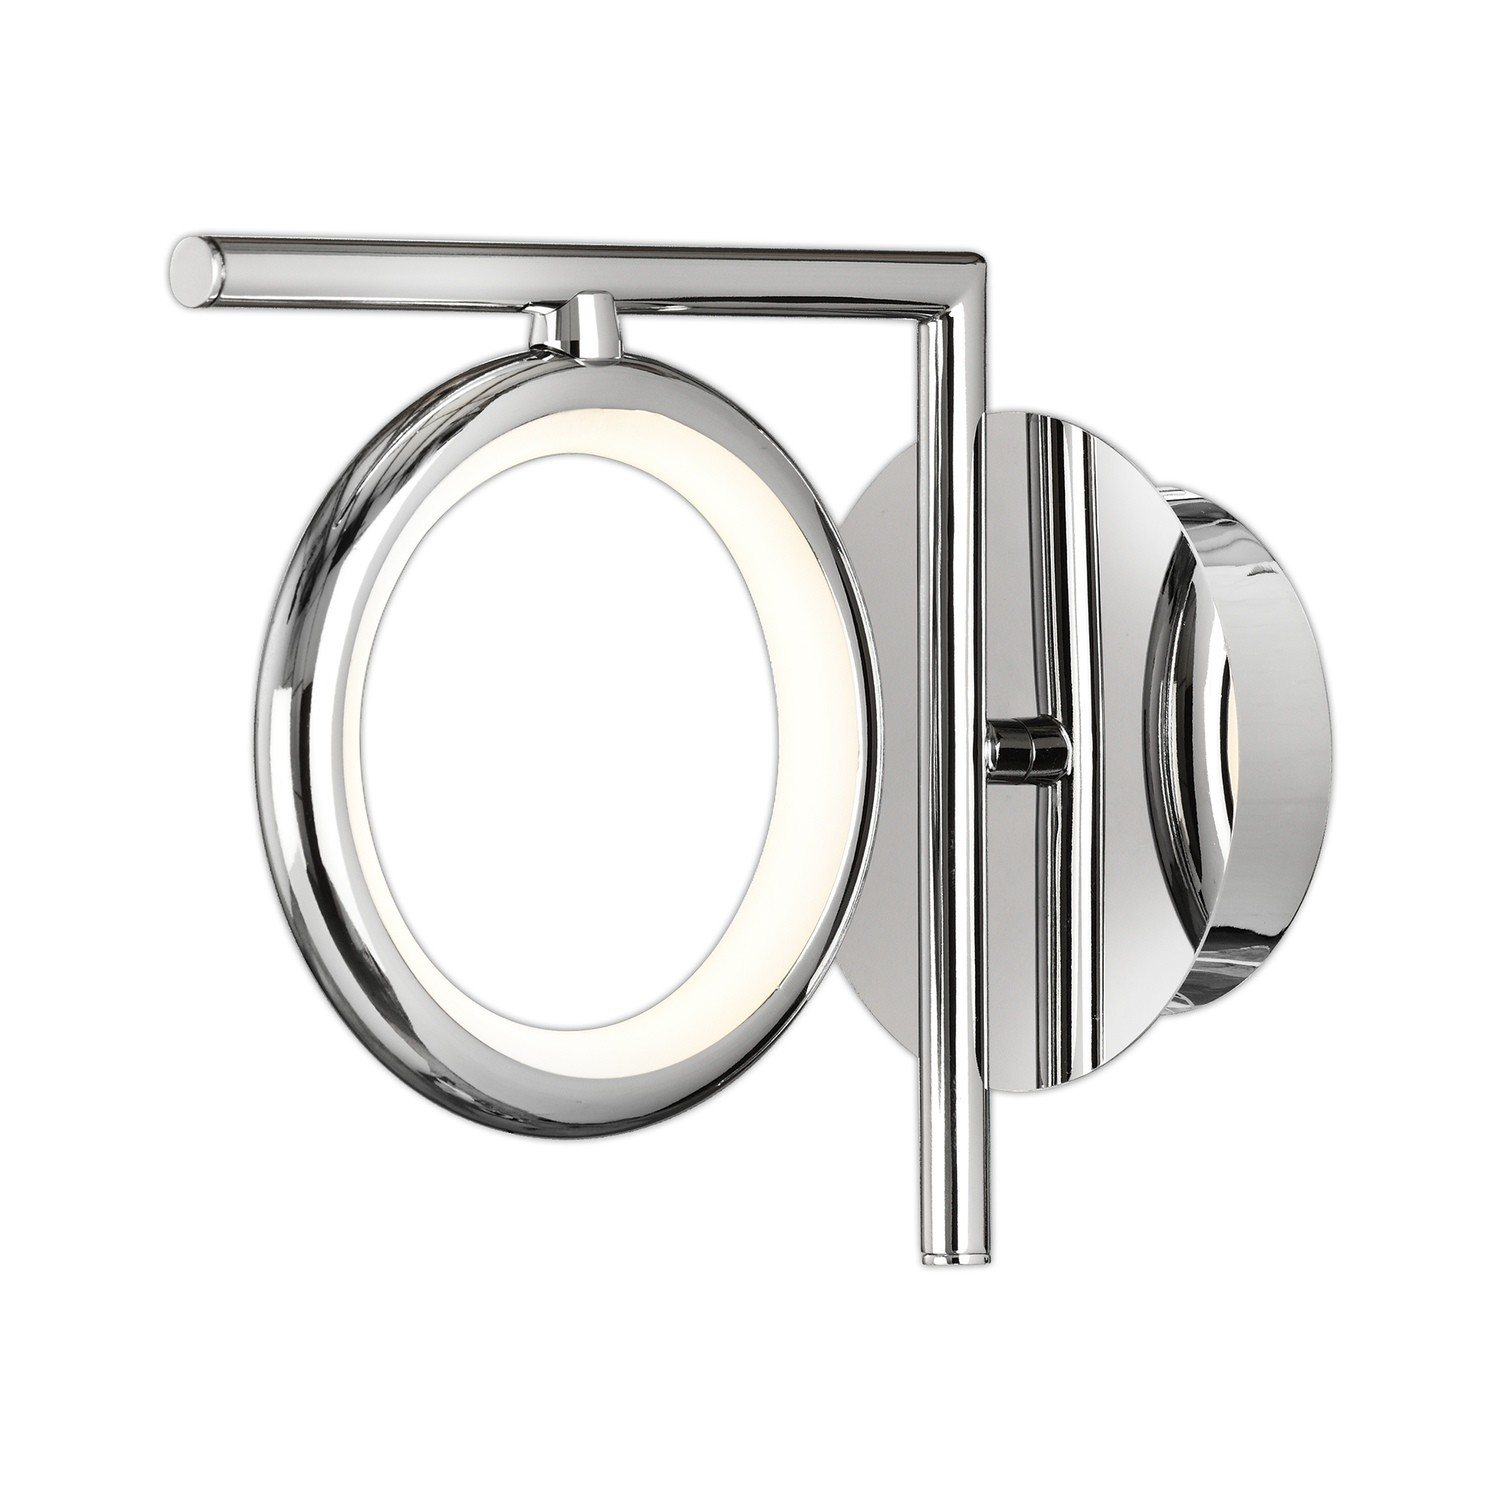 Olimpia Wall Lamp, 8W LED, 3000K, 600lm, IP20, Chrome, 3yrs Warranty